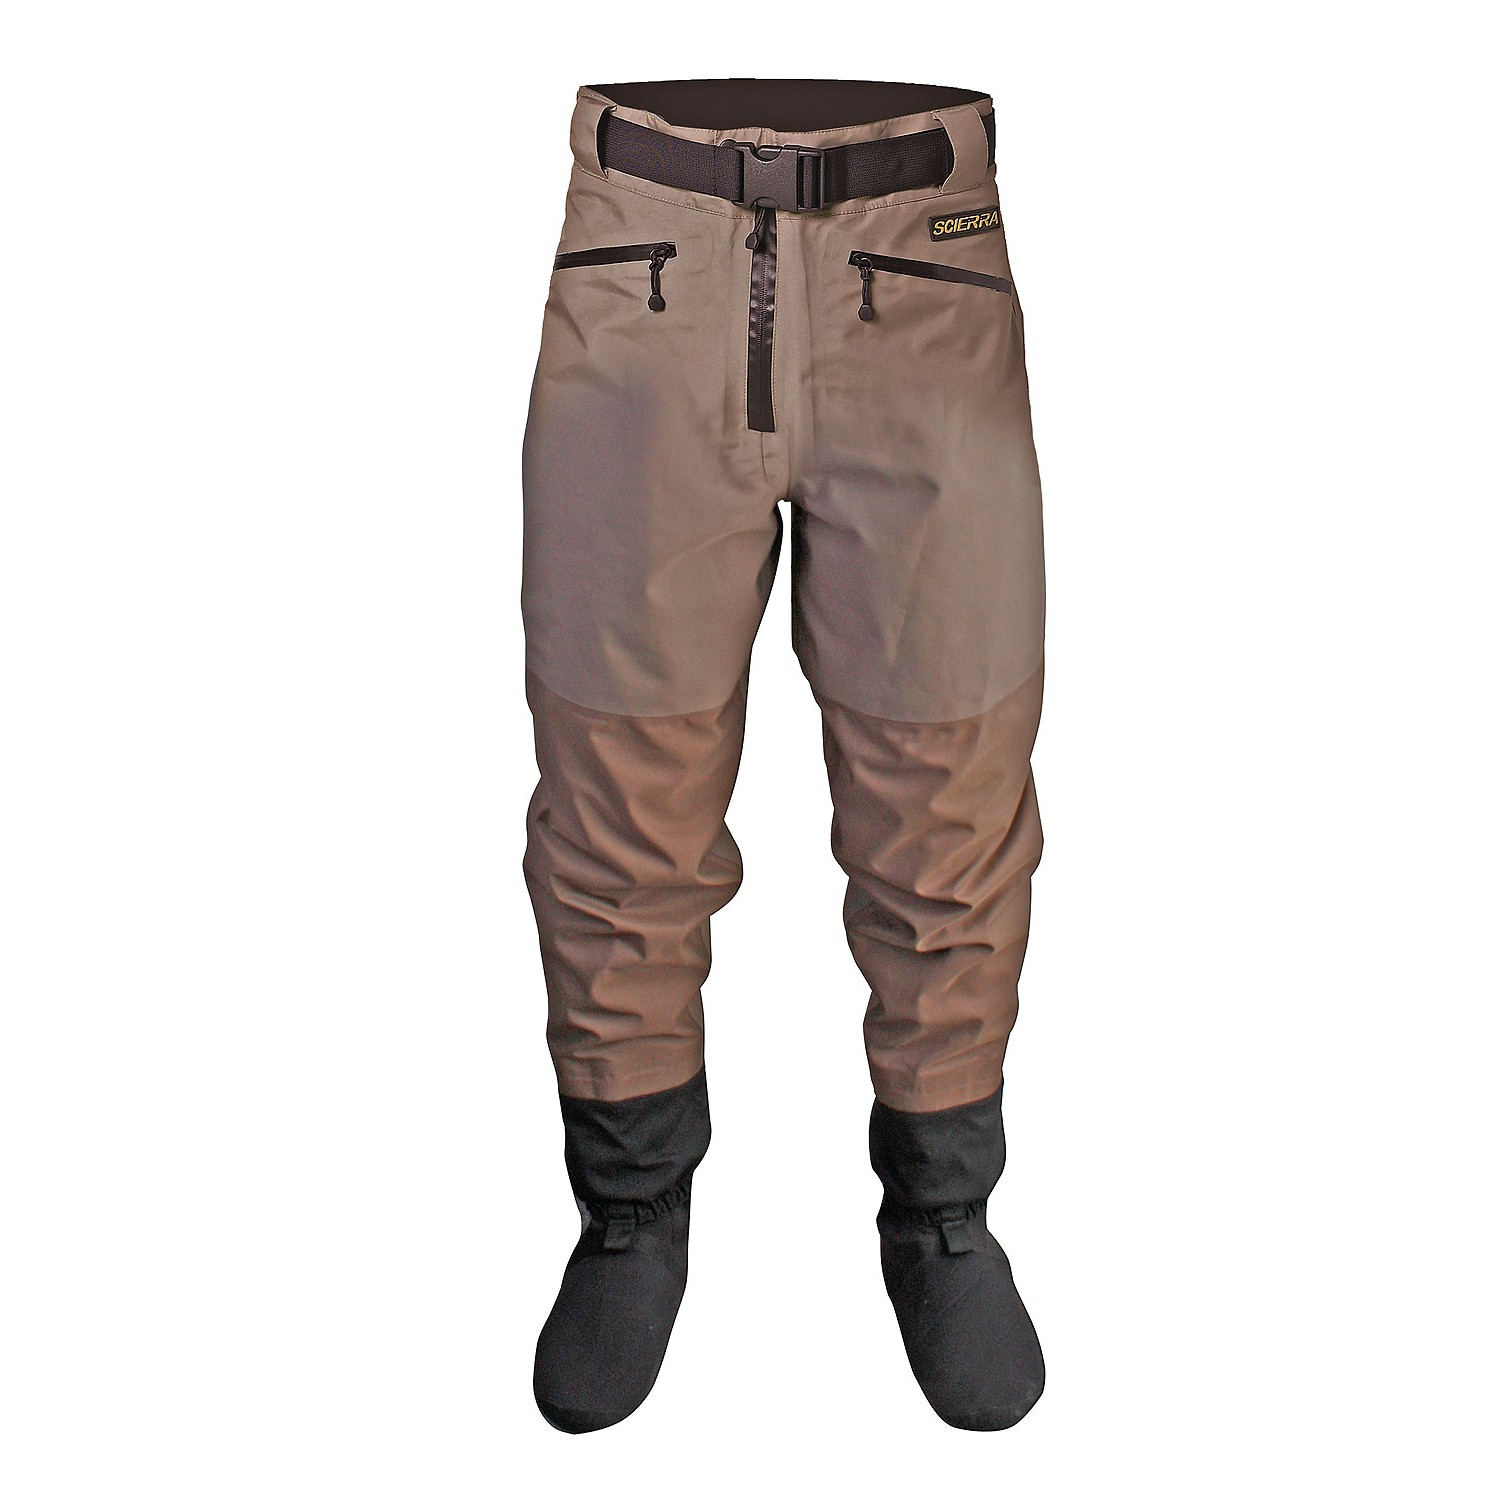 SCIERRA CC3 Waist Wader stocking